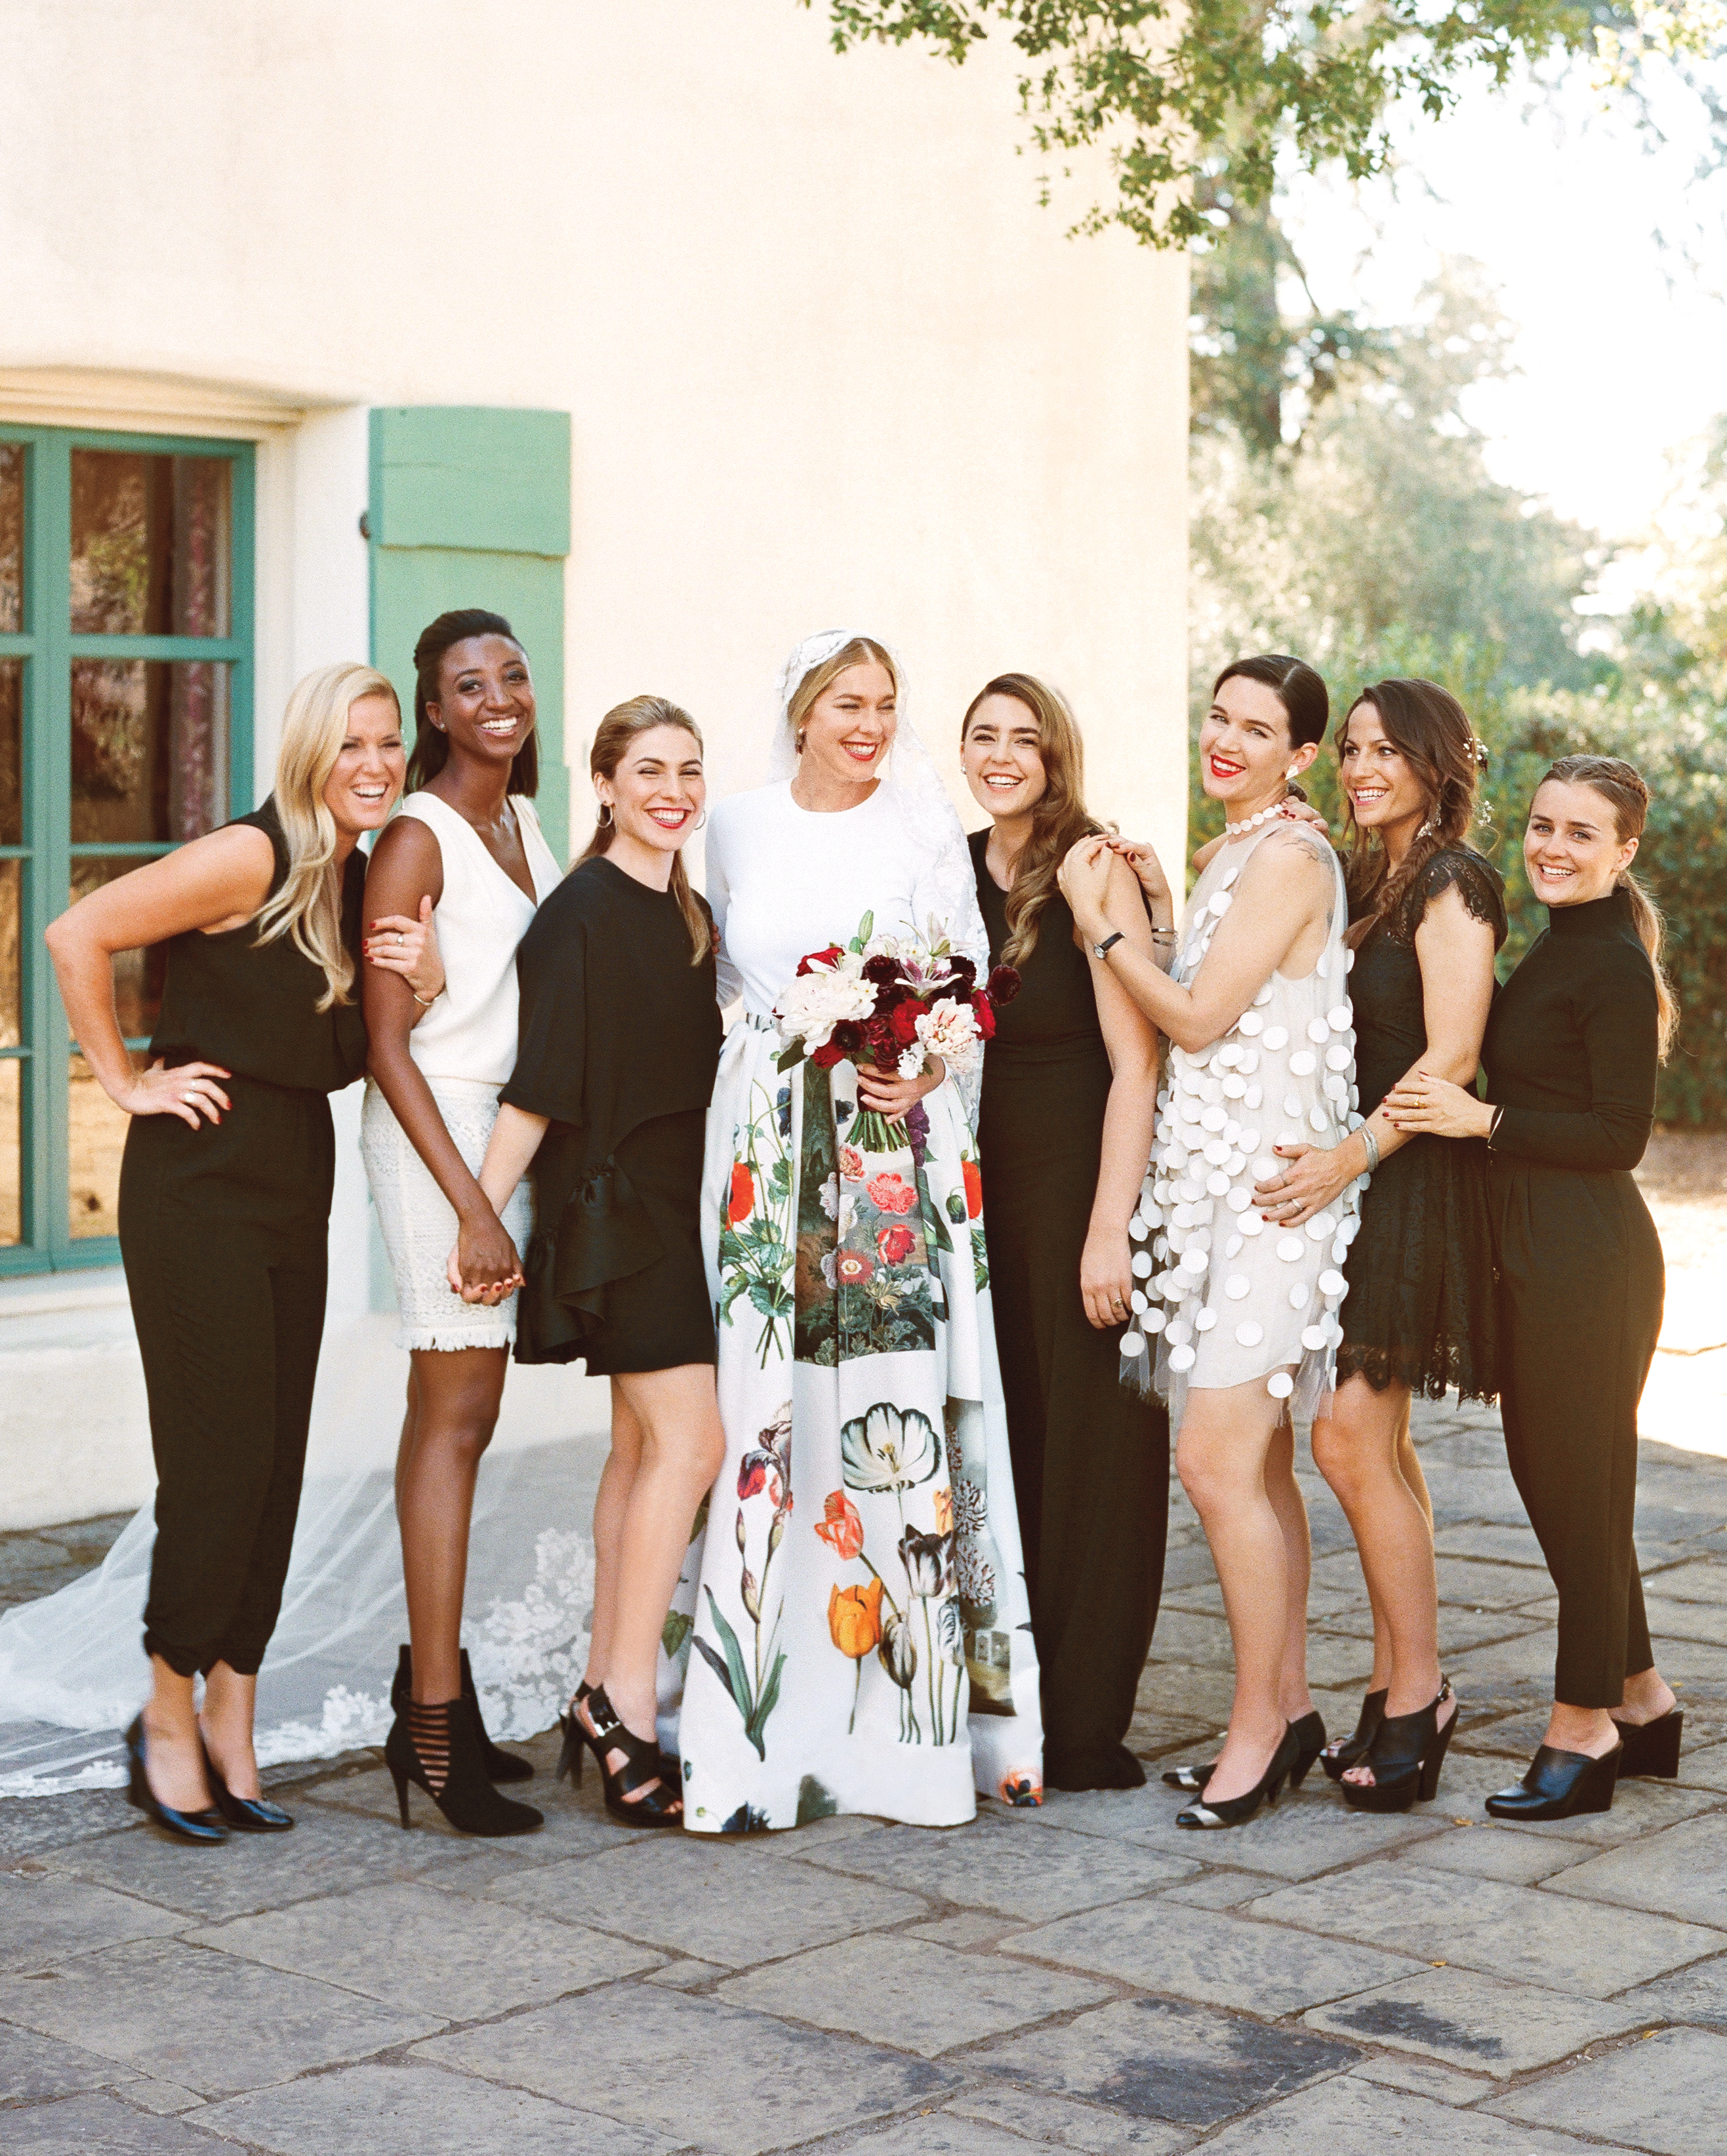 8 Ways Brides Are Breaking Tradition (and Why it's Awesome)